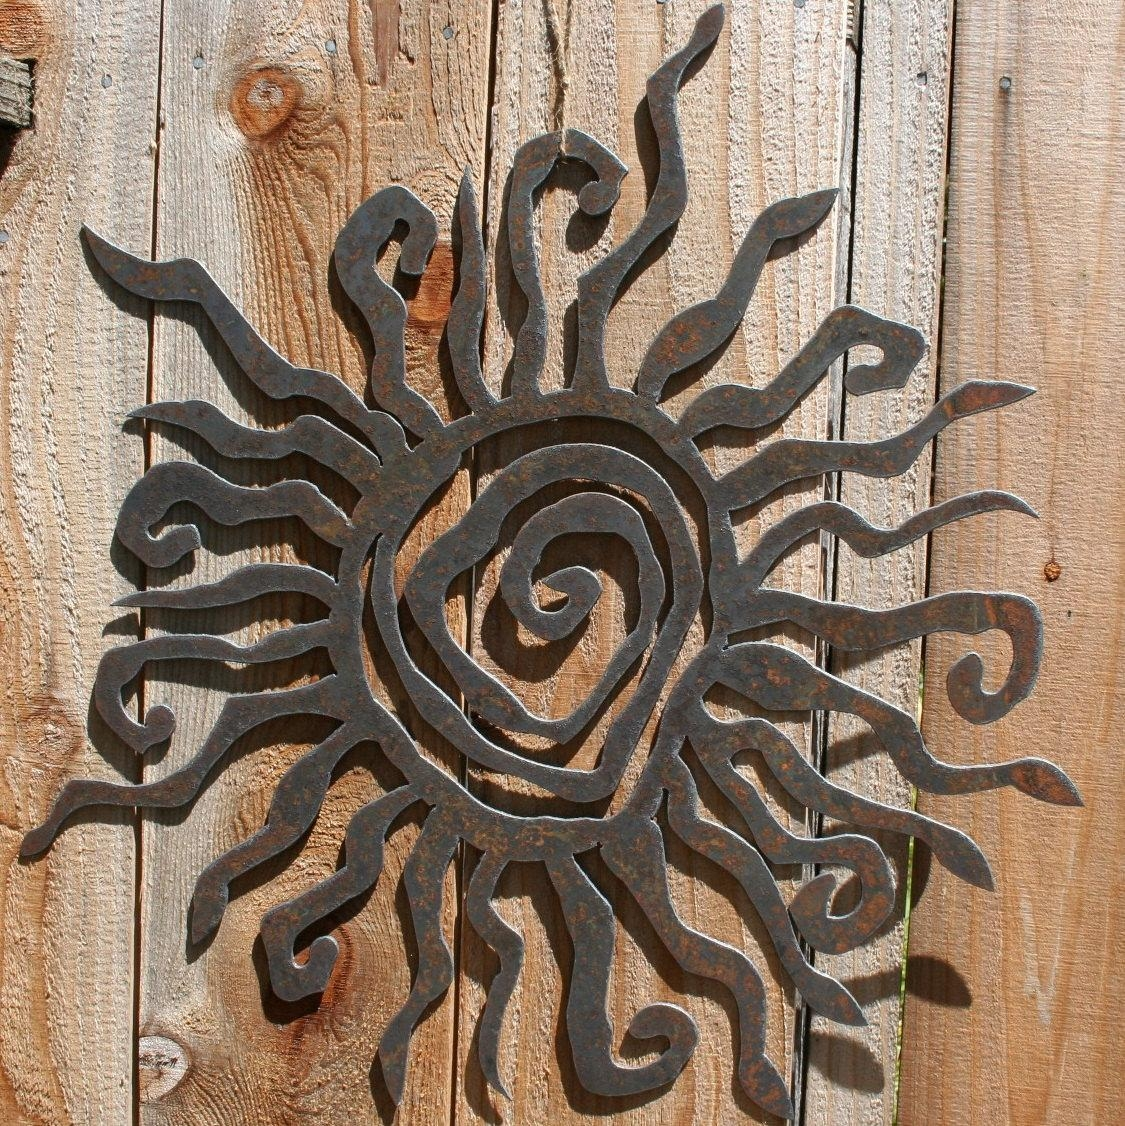 Rustic Sun Indoor/outdoor Wall Decor 30 Recycled Steel Intended For Outdoor Wall Sculpture Art (Image 12 of 20)